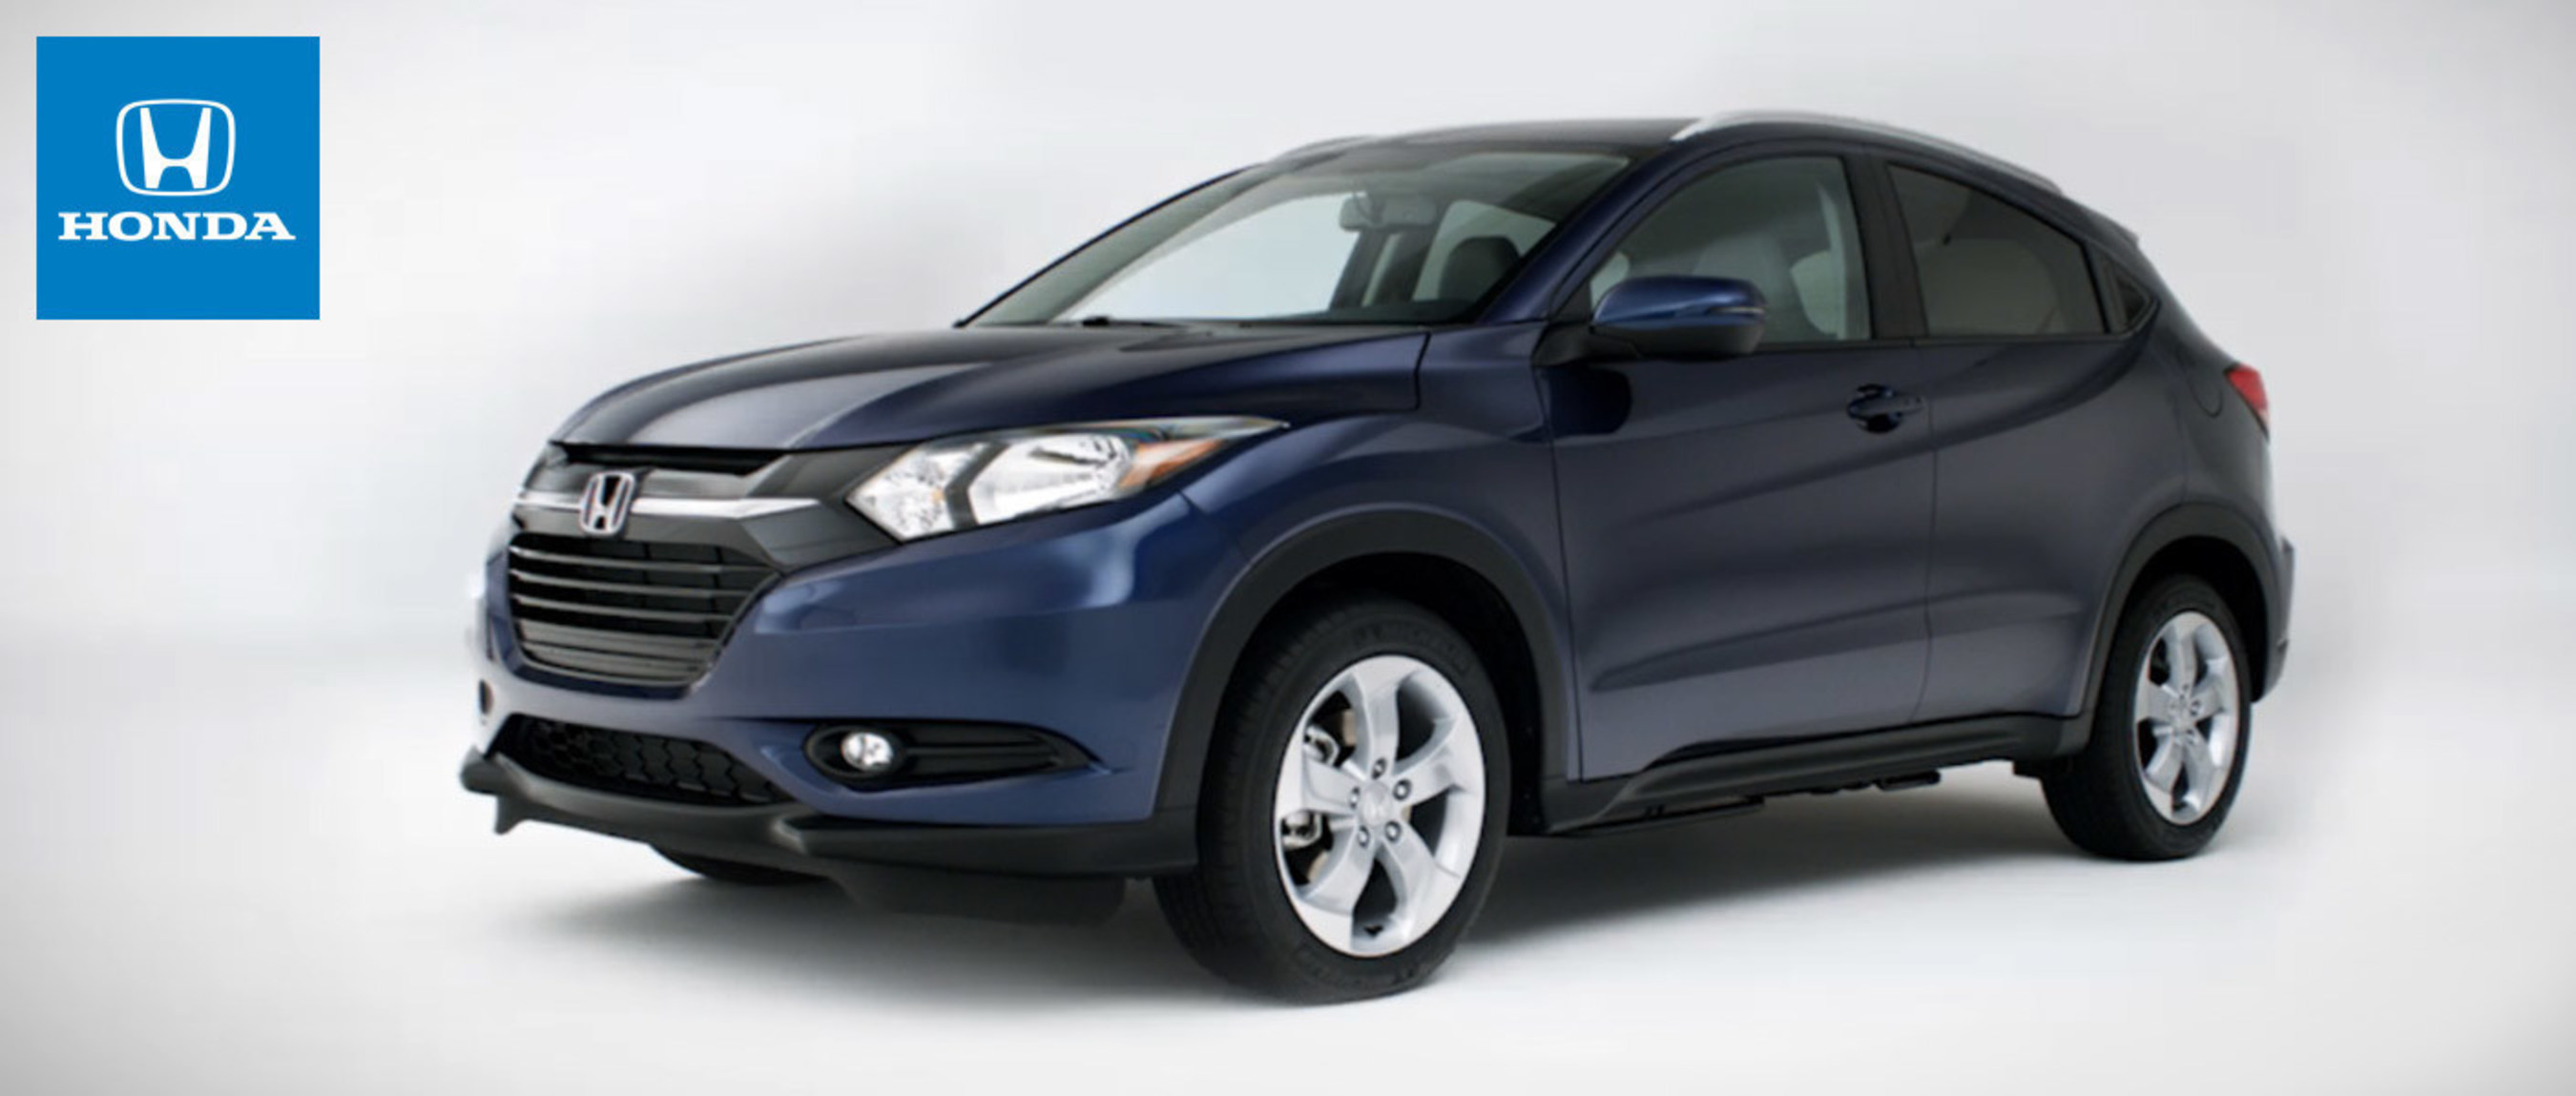 New 2016 Honda HR-V now available at Honda of Burien